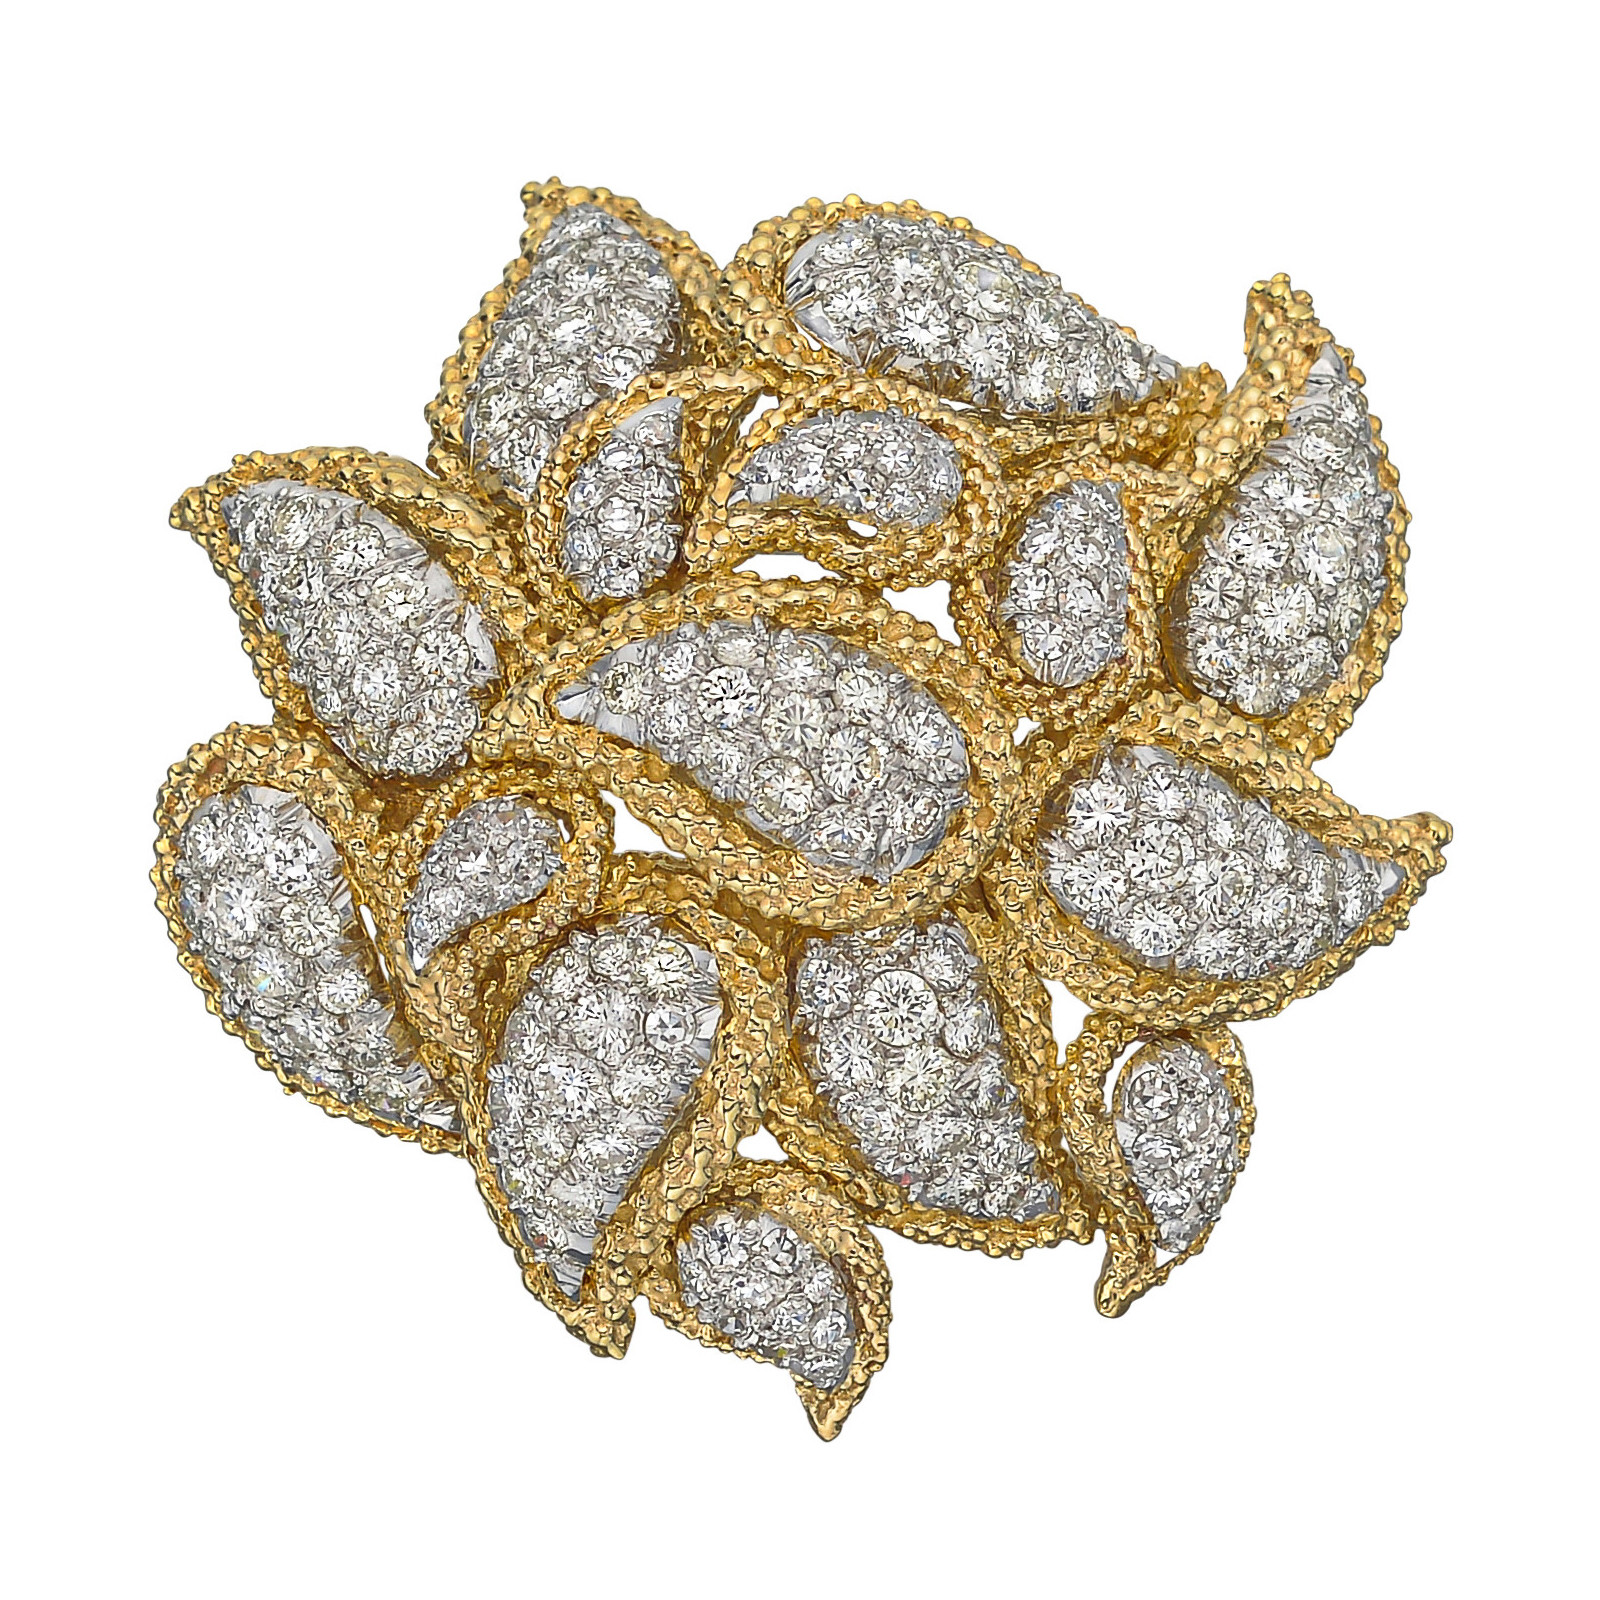 Platinum, 18k Gold & Diamond Paisley Brooch